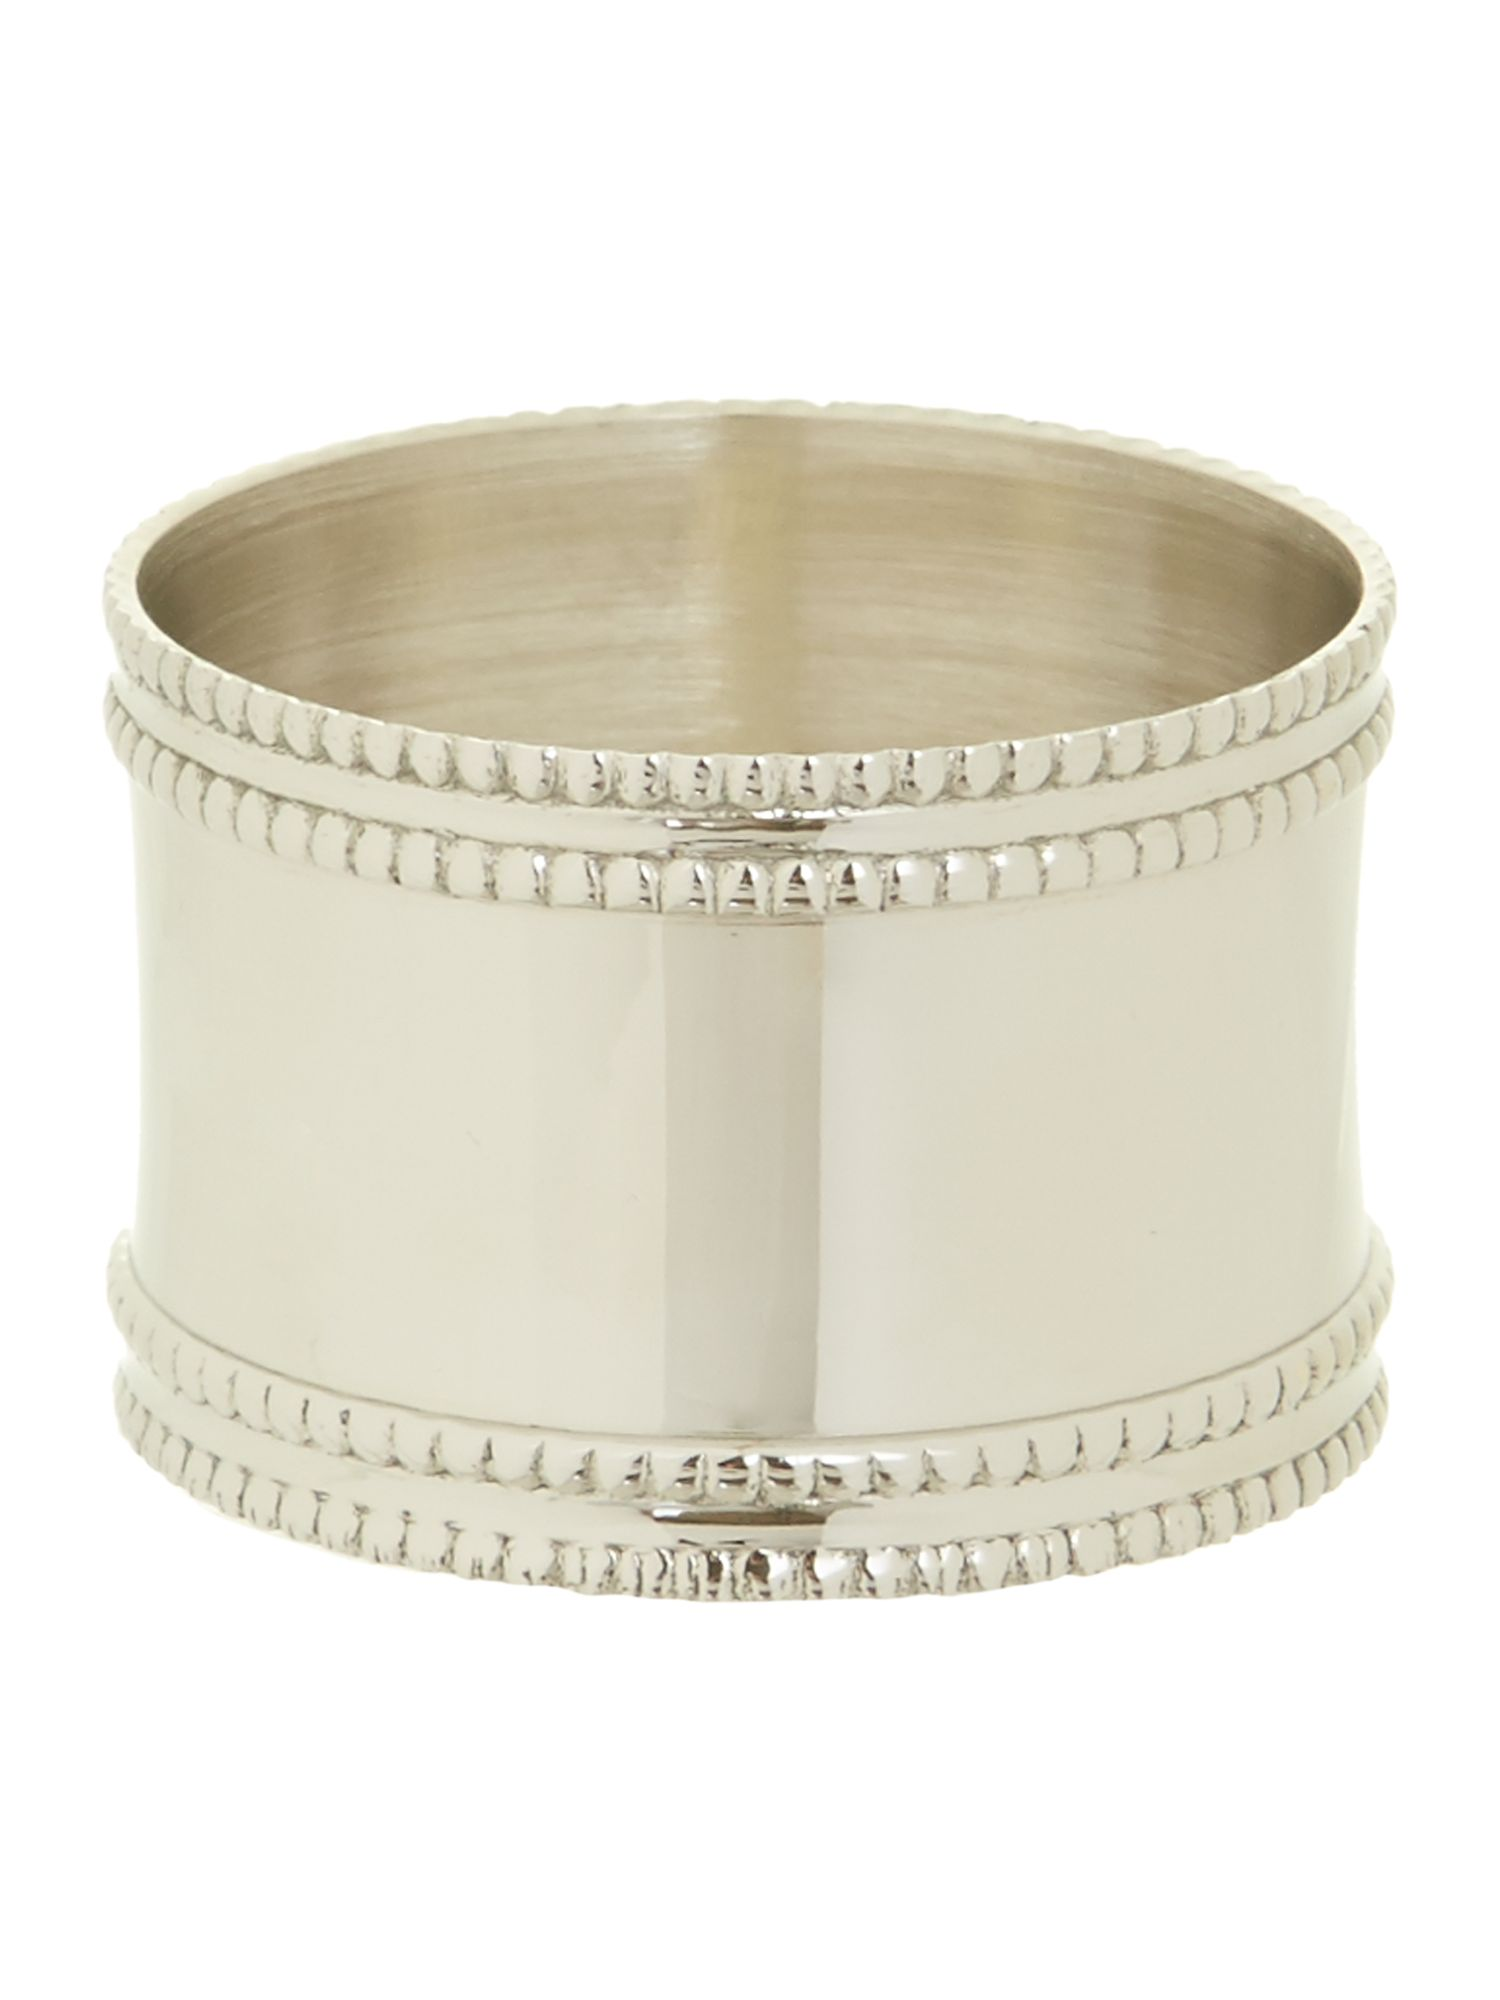 Silver band napkin ring set of 4